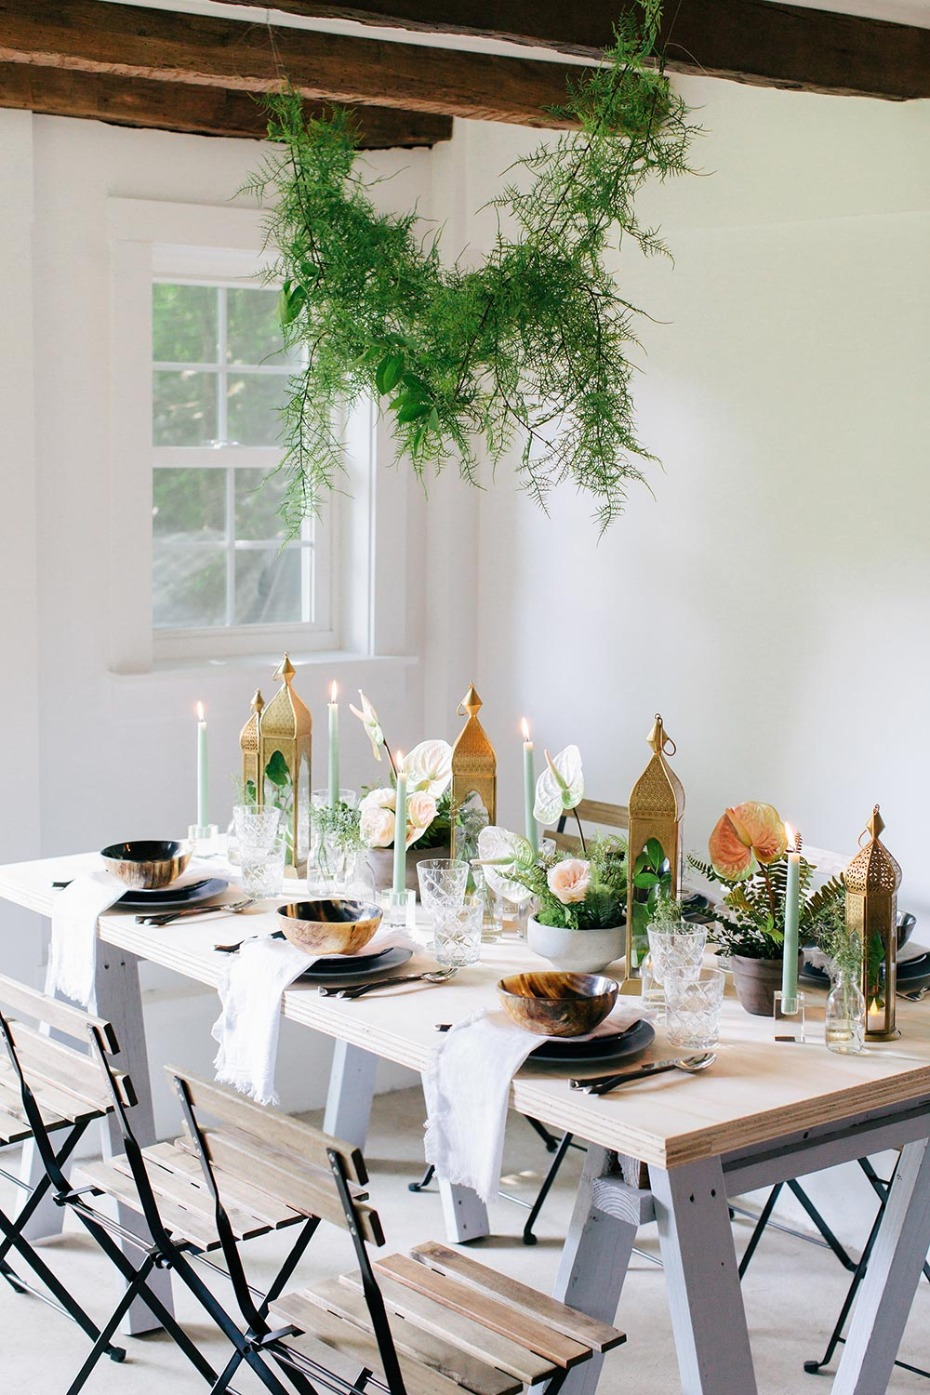 Rustic Wedding Table Decorations with Lanterns by Jamali Garden and Ruffled Blog